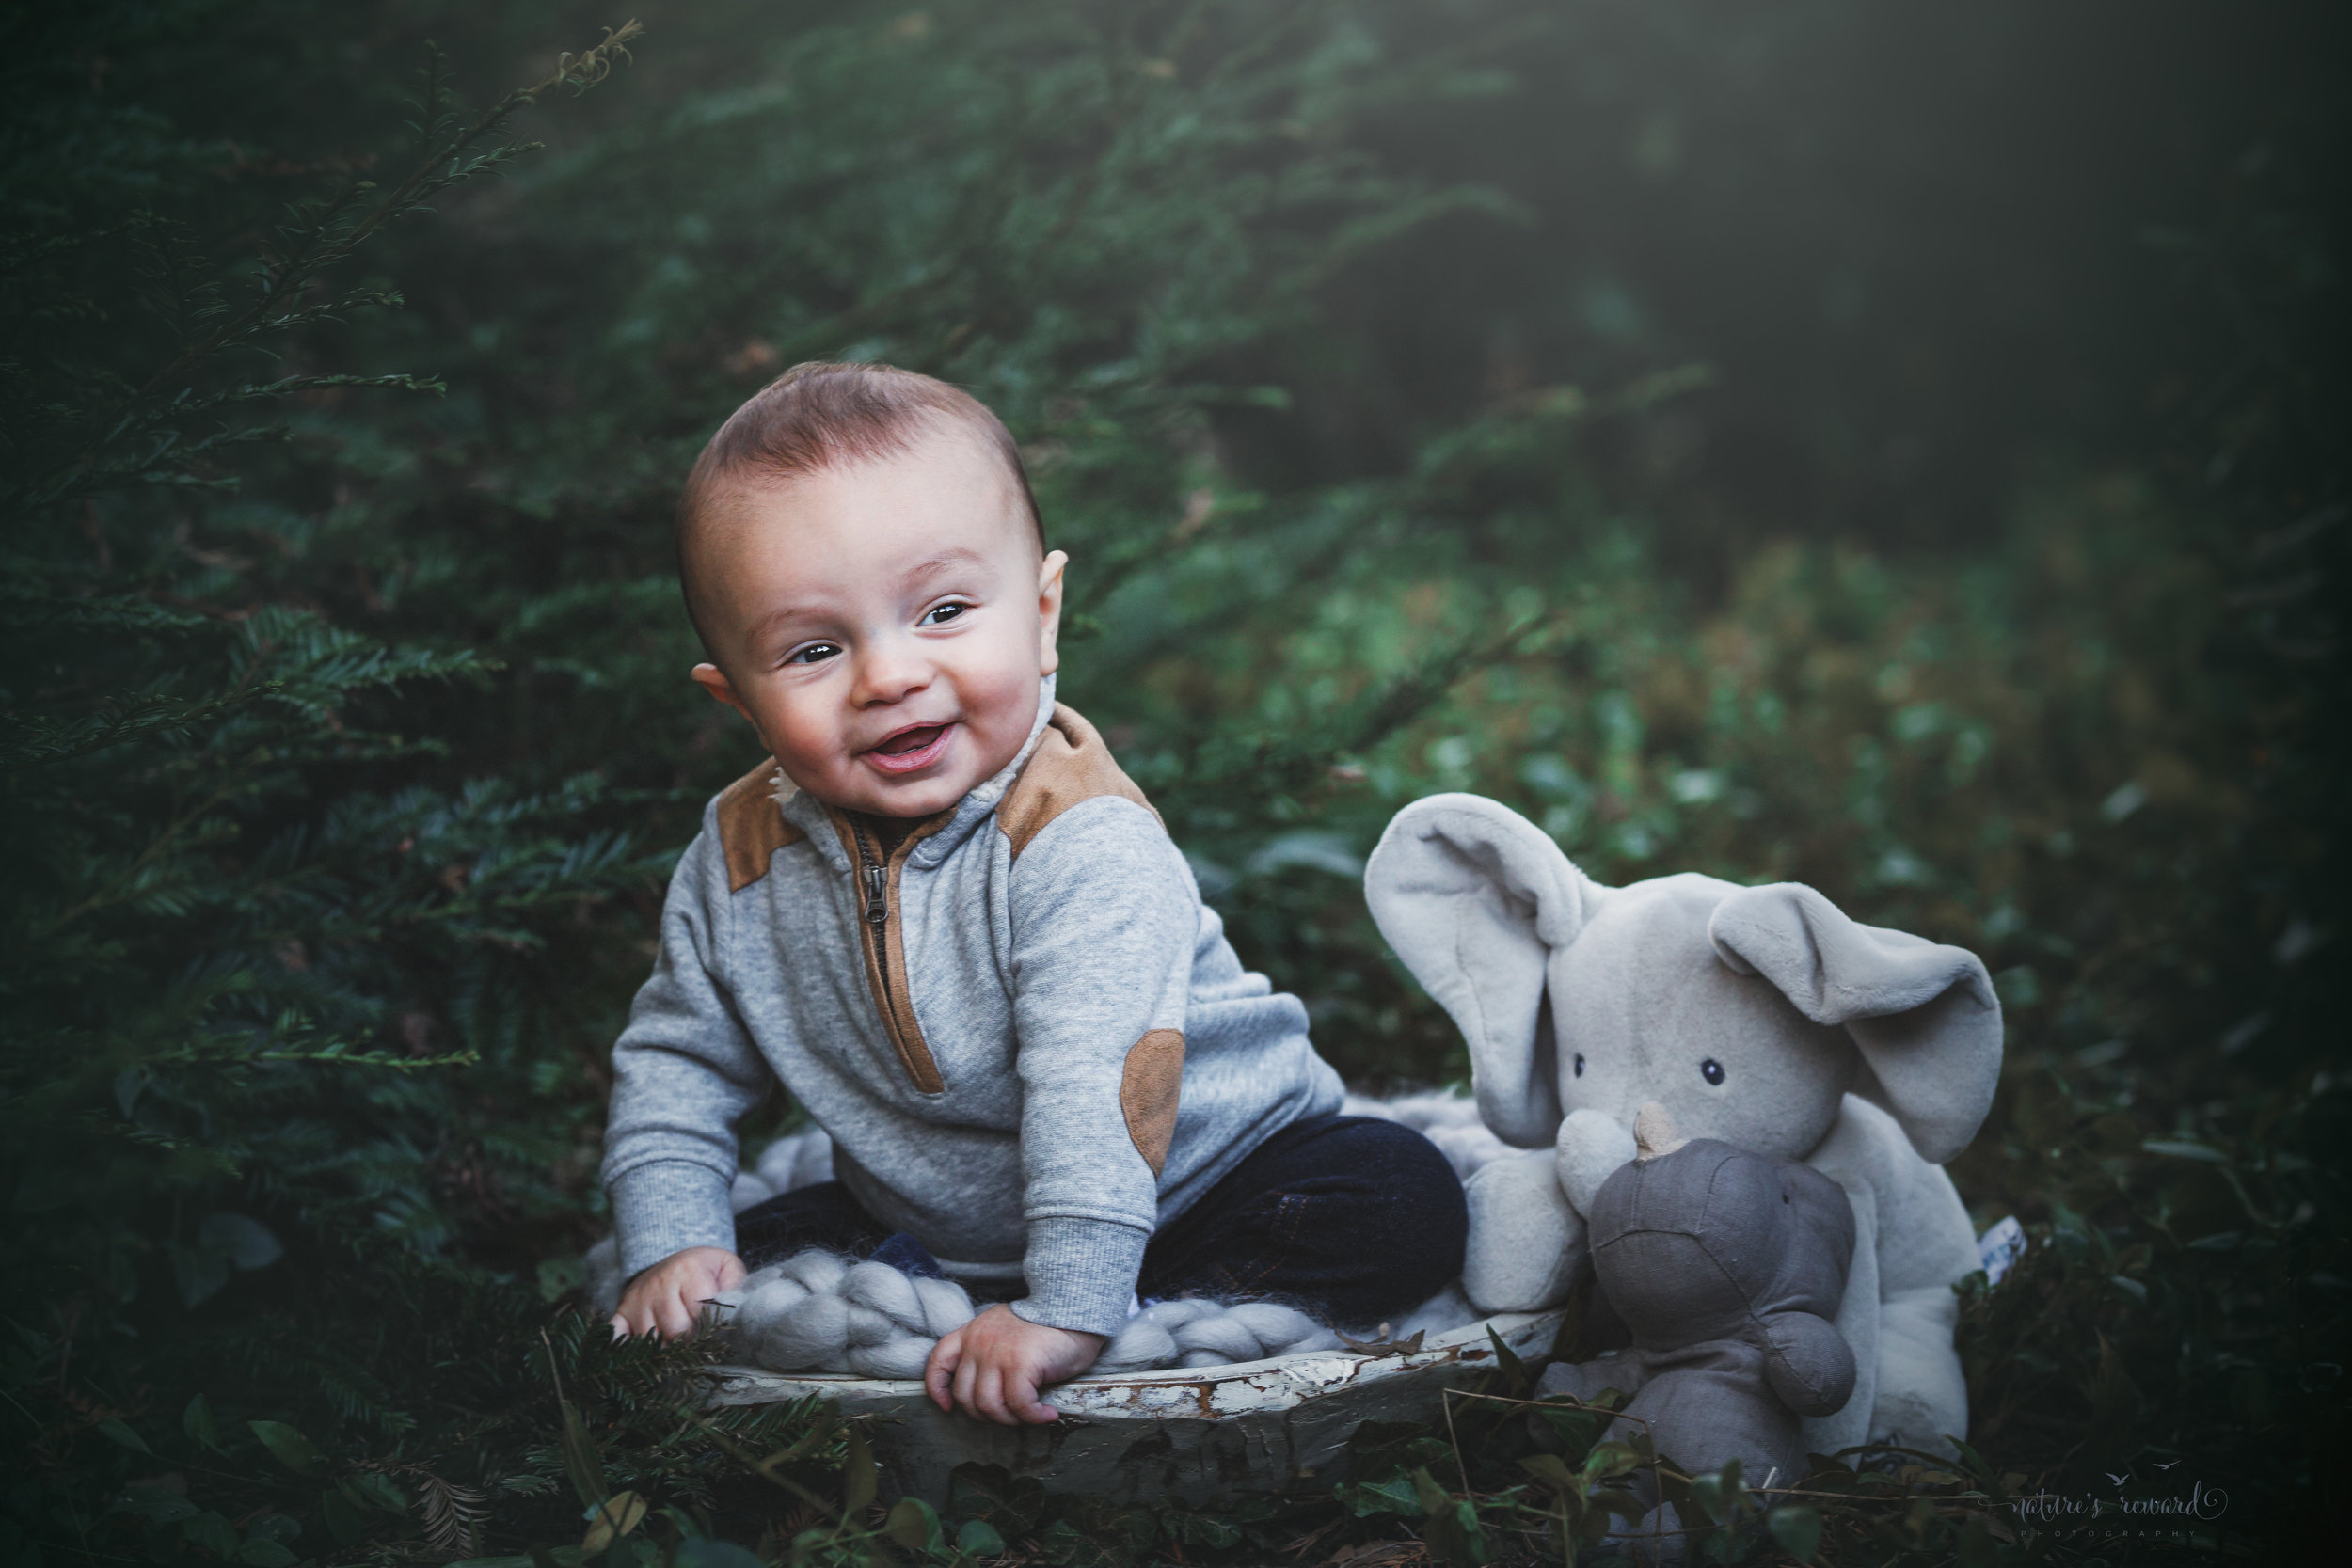 6 Month sitter baby boy in grey with his stuffed elephant and rhinoceros in a lush green park setting in Redlands, Ca. by San Bernardino photographer- Nature's Reward Photography